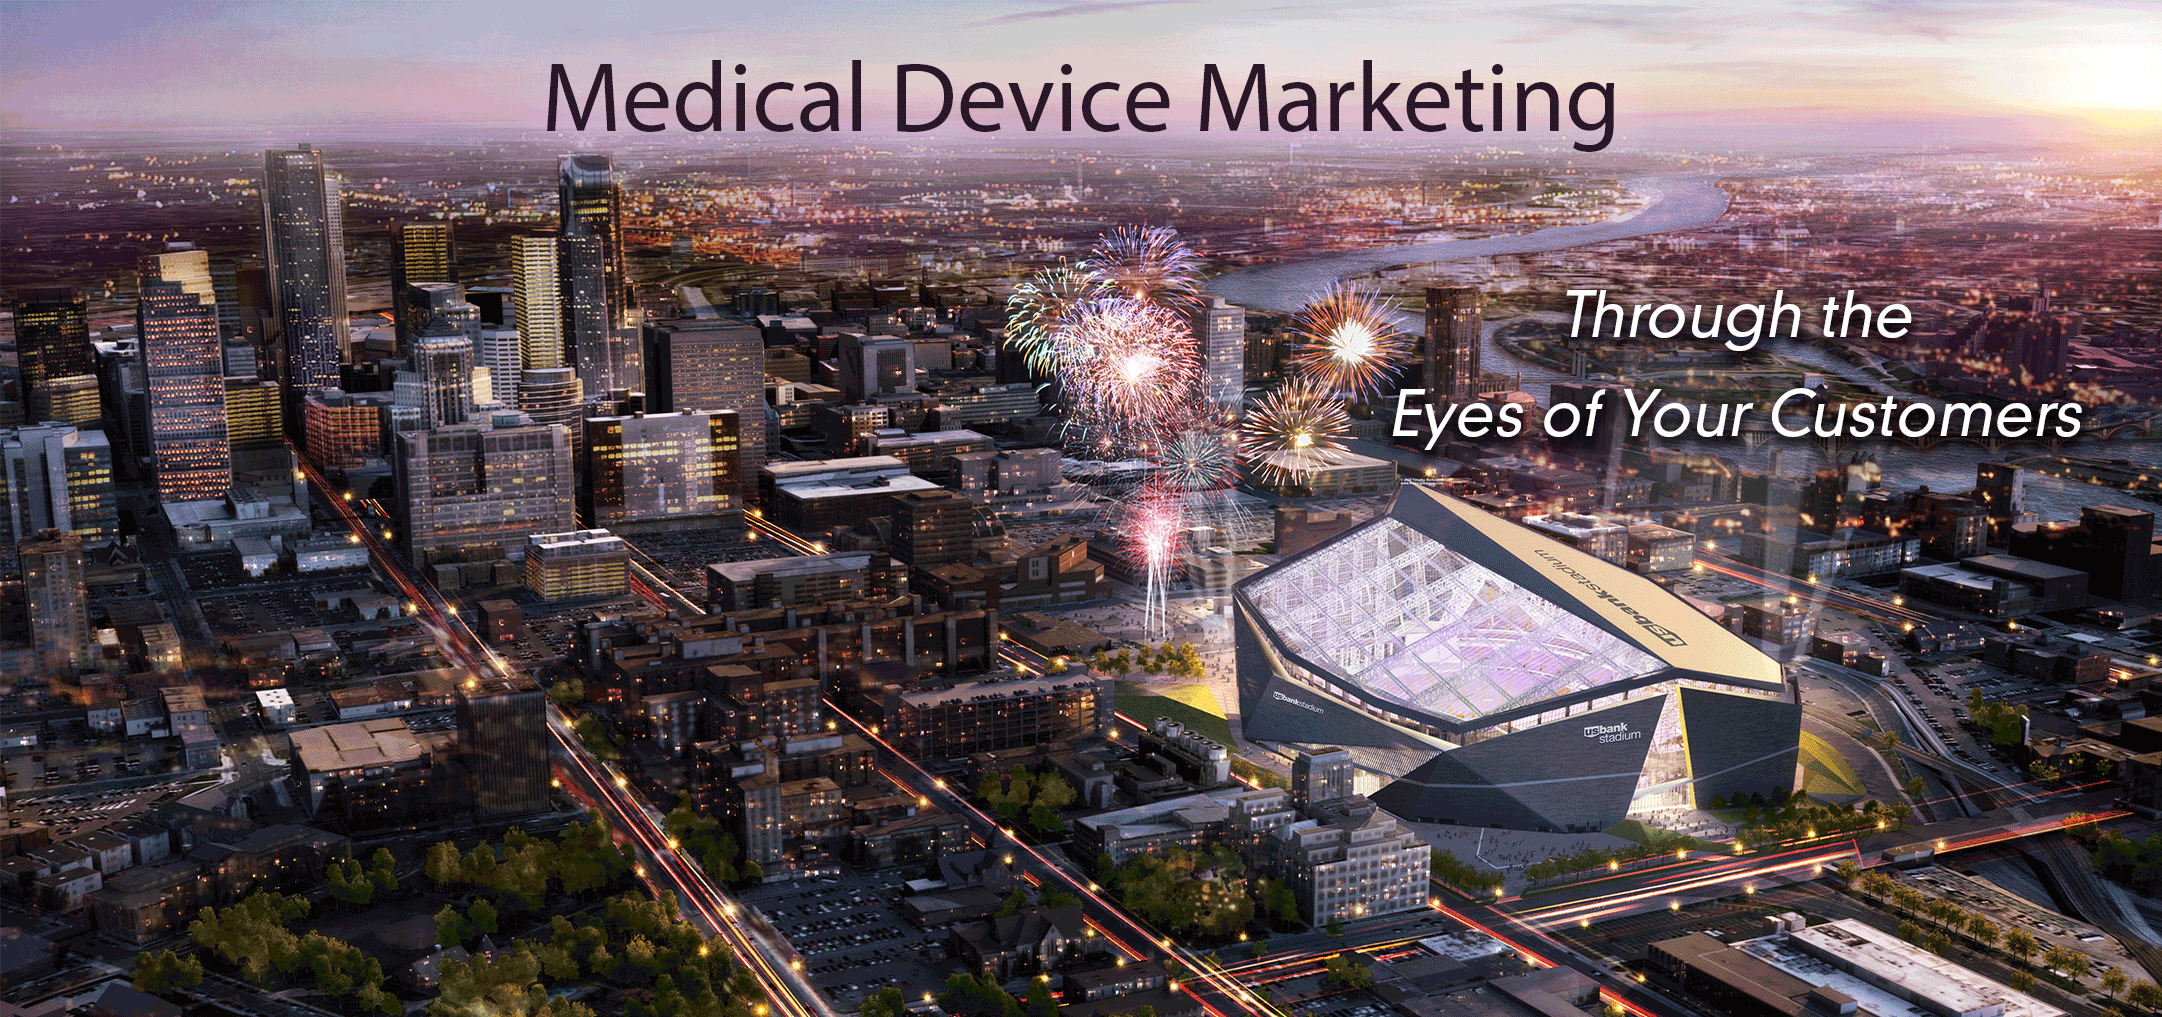 DevicePharm - Medical Device Marketing through the eyes of your customers